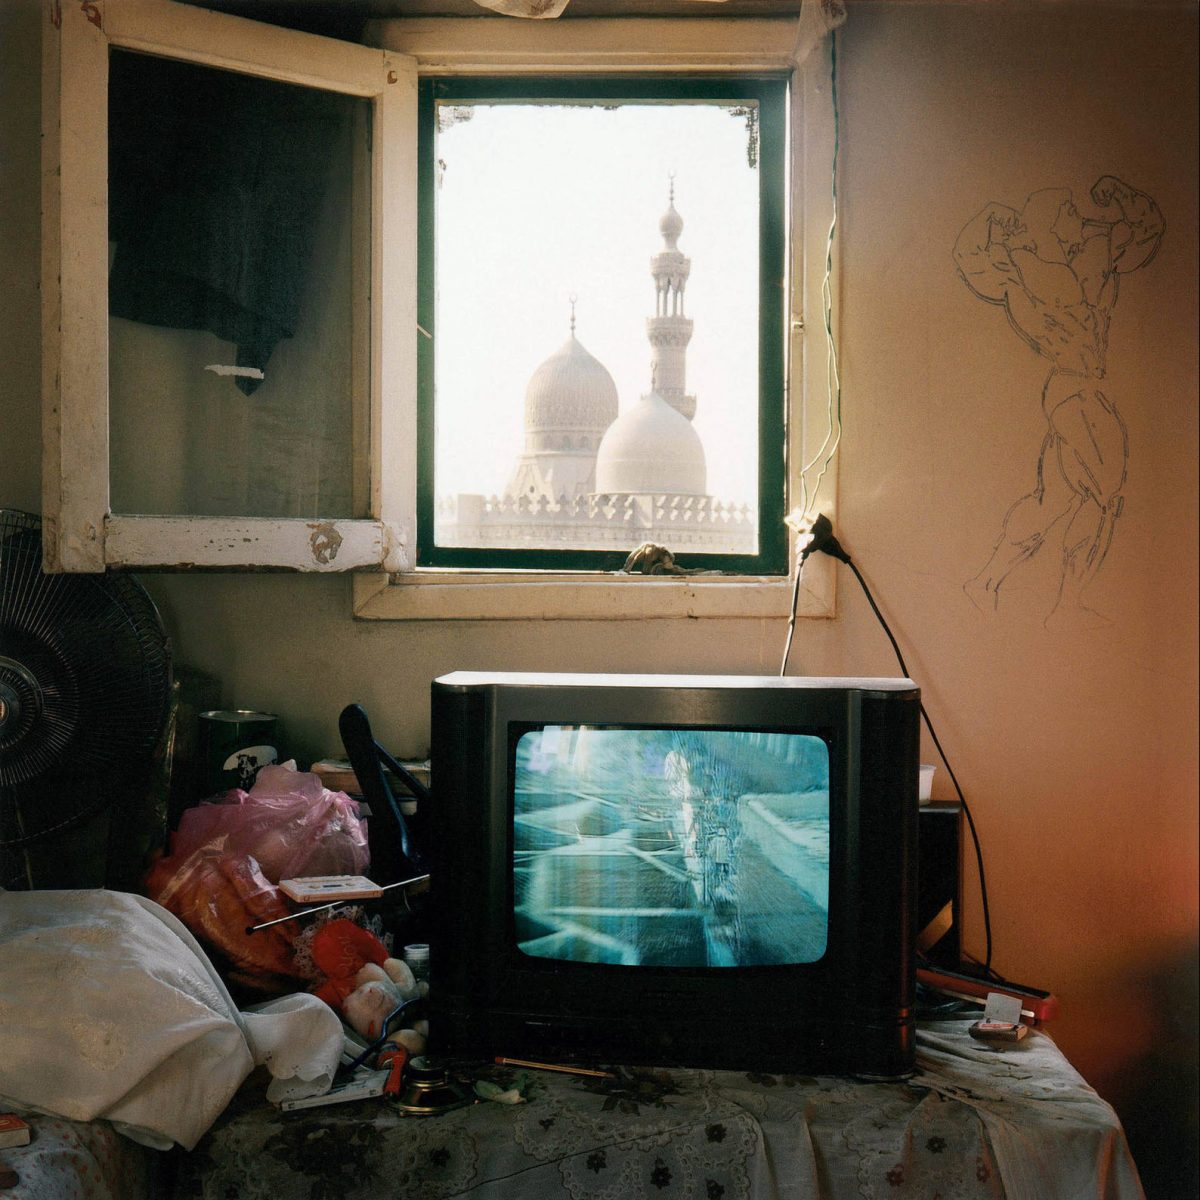 View on the Mosque Al-Rifai, Cairo, 2001 photograph by Denis Dailleux